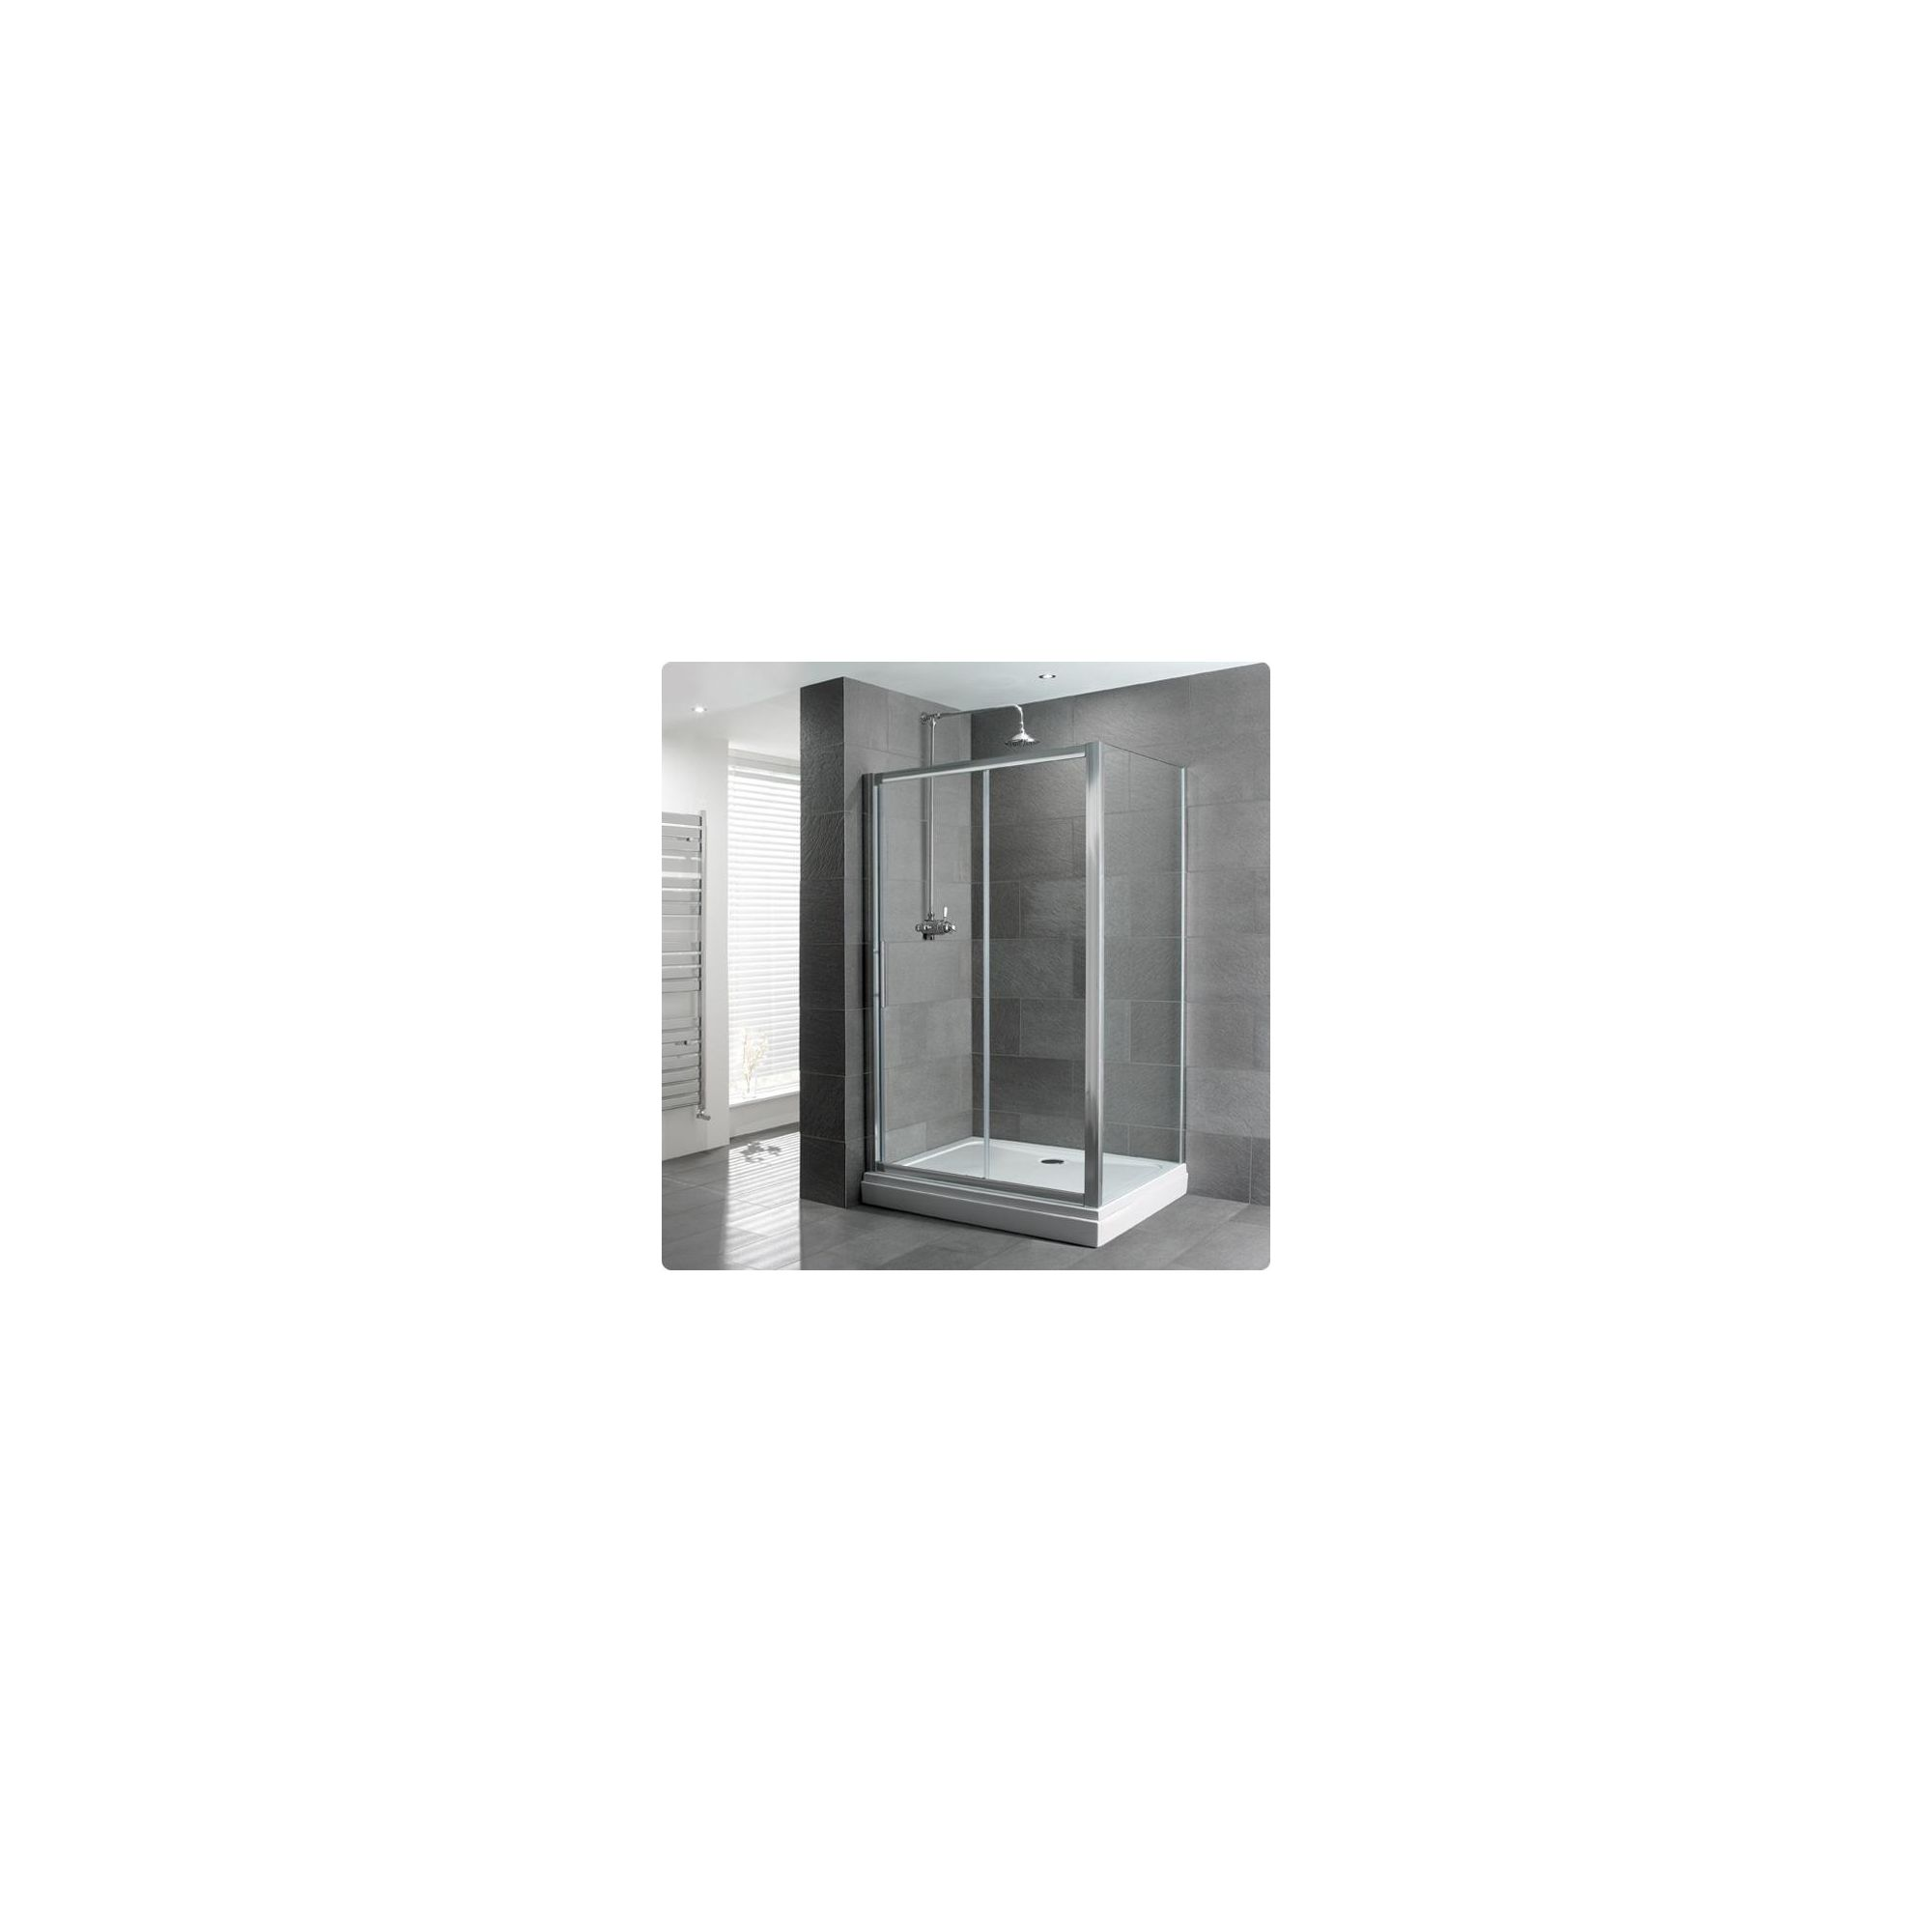 Duchy Select Silver Single Sliding Door Shower Enclosure, 1200mm x 800mm, Standard Tray, 6mm Glass at Tesco Direct